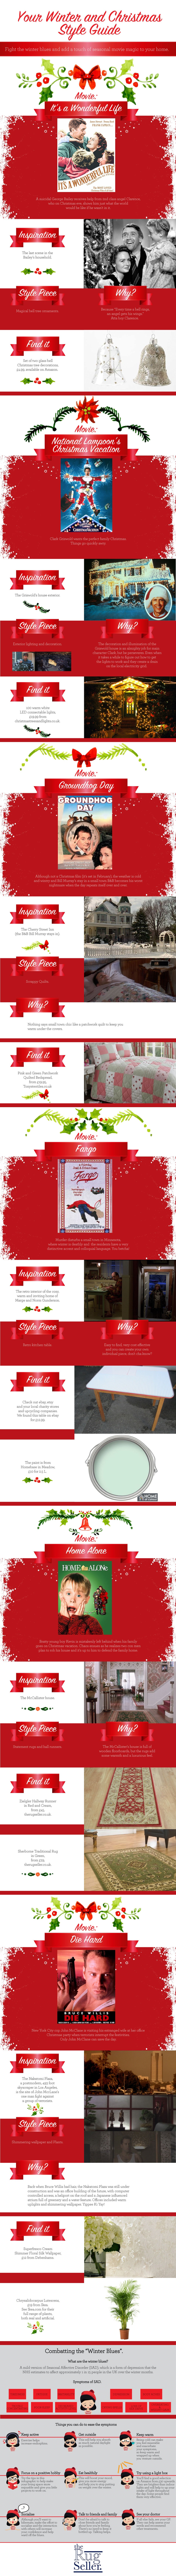 Fight The Blues In Style This Christmas [Infographic]